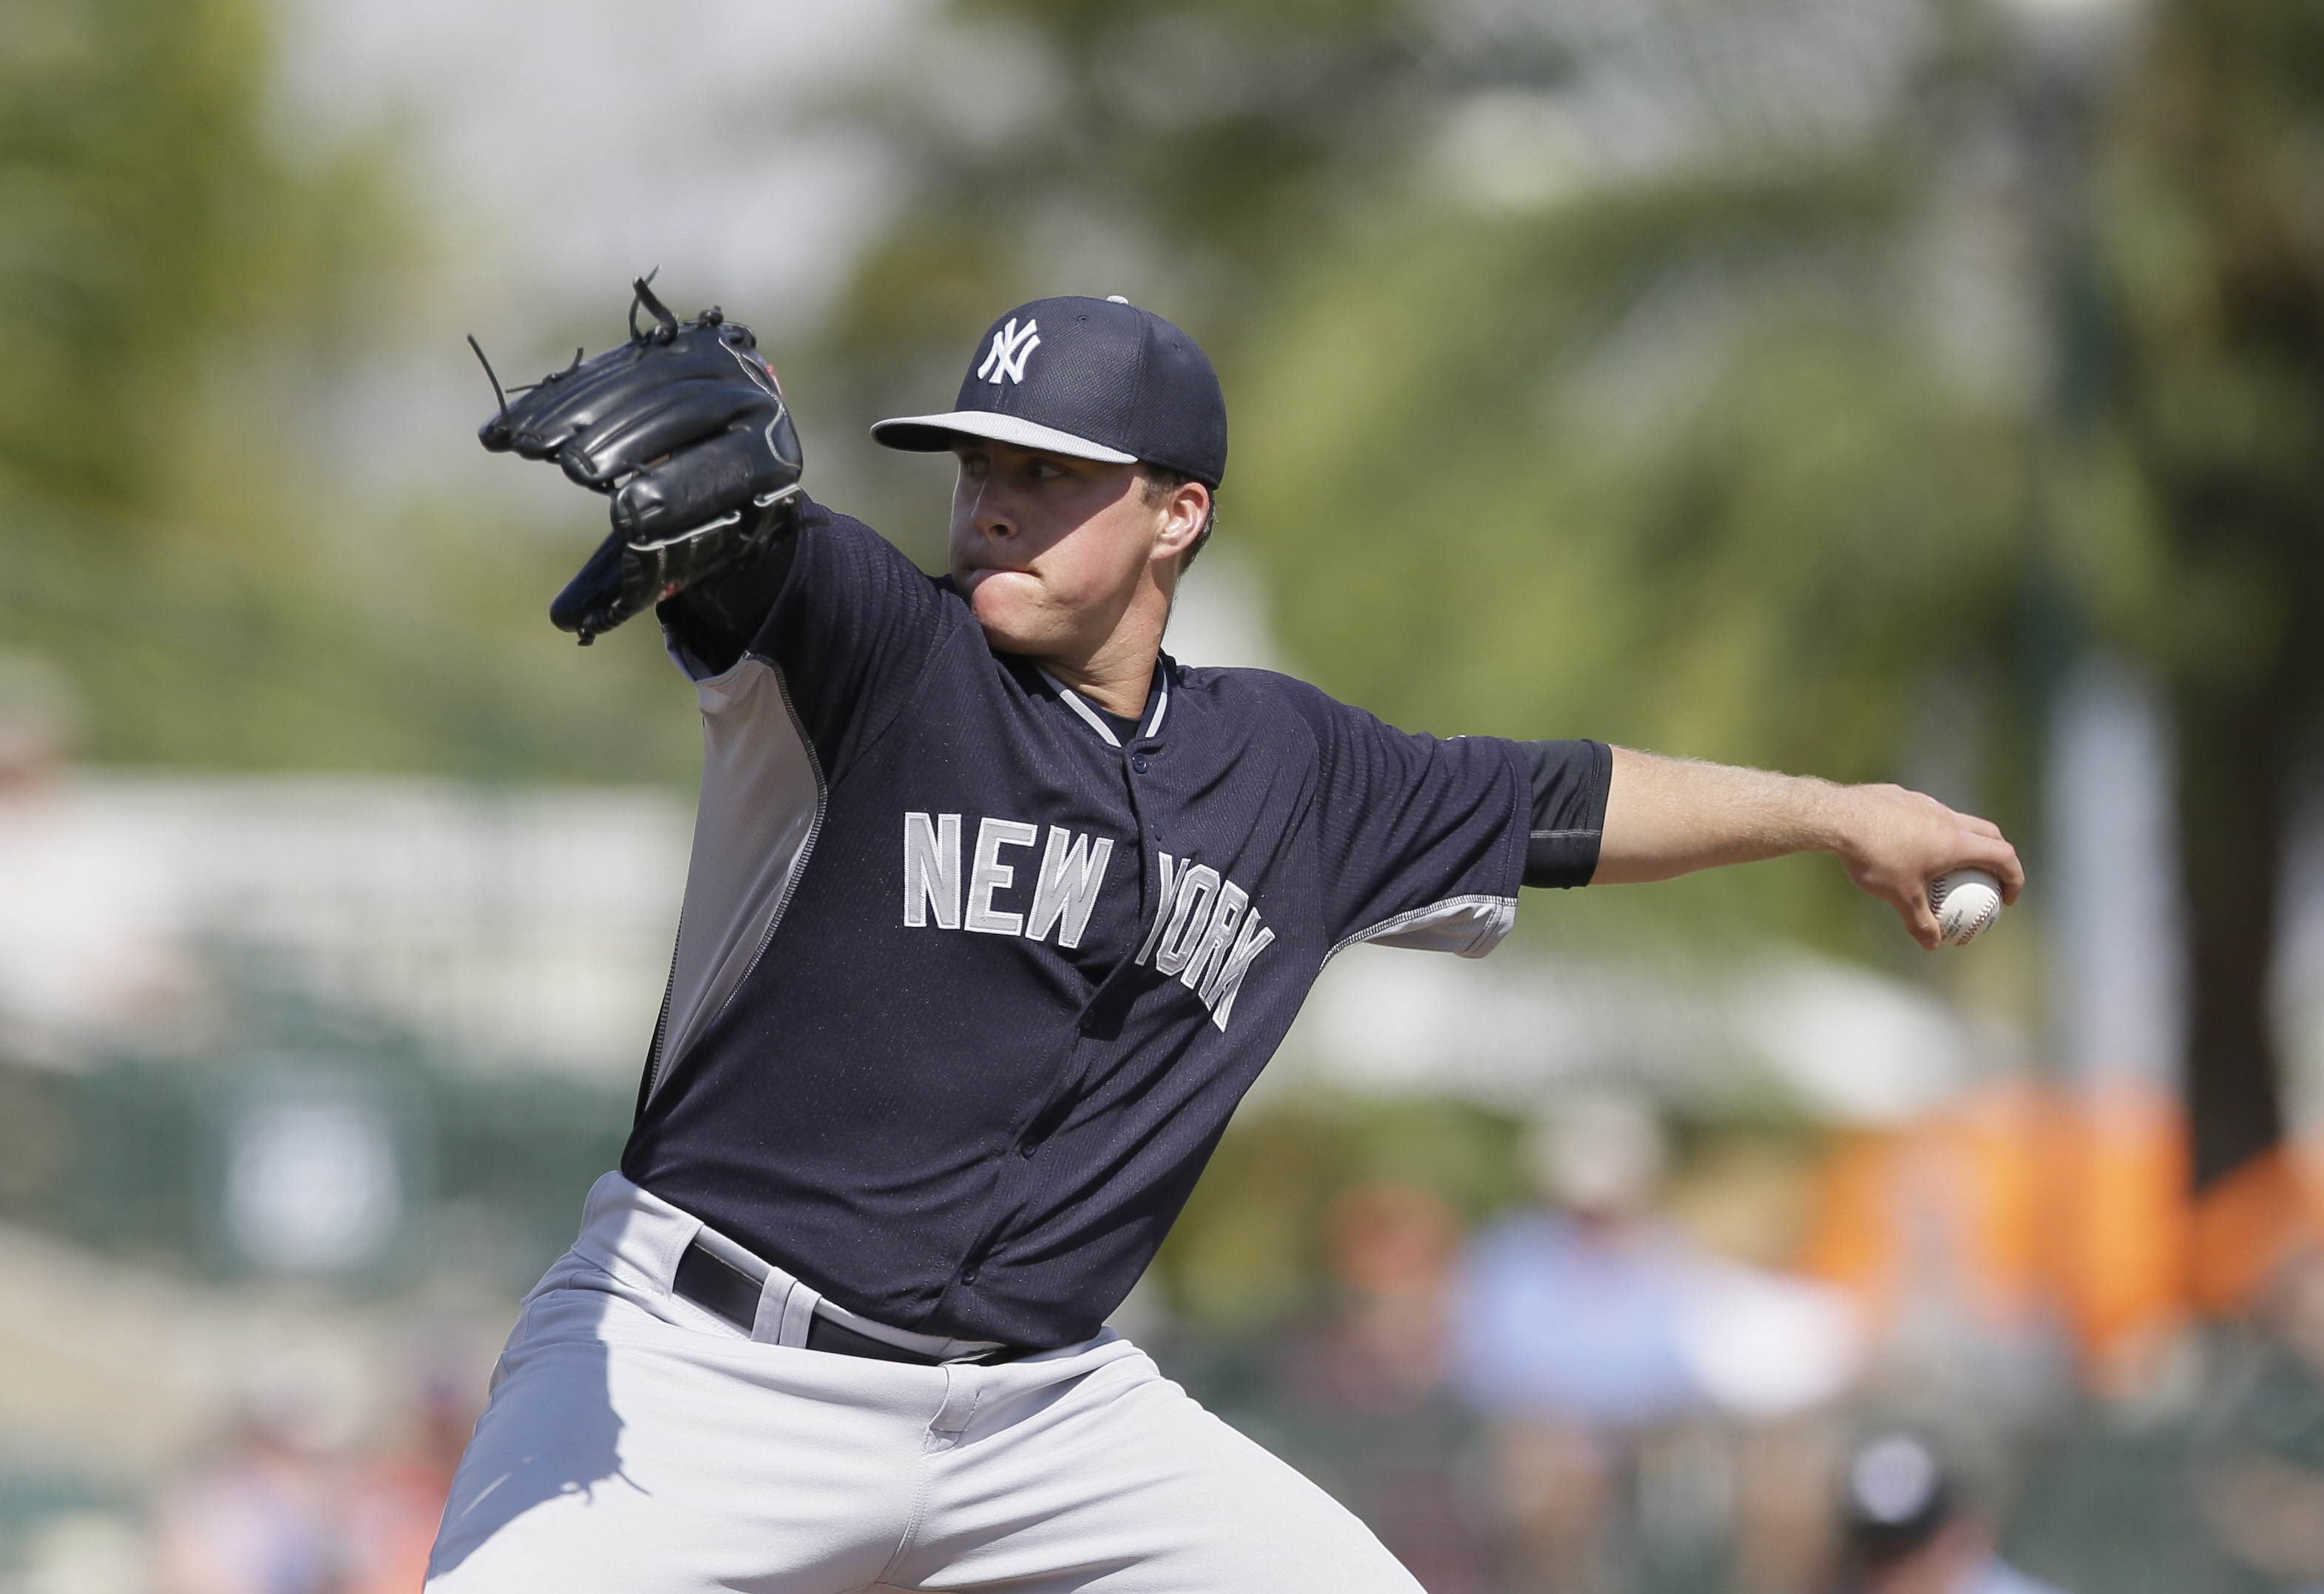 FILE - In this March 10, 2015 file photo, New York Yankees relief pitcher Jacob Lindgren throws during the eighth inning of a spring training exhibition baseball game against the Baltimore Orioles in Sarasota, Fla. Selected in the second round with the 55